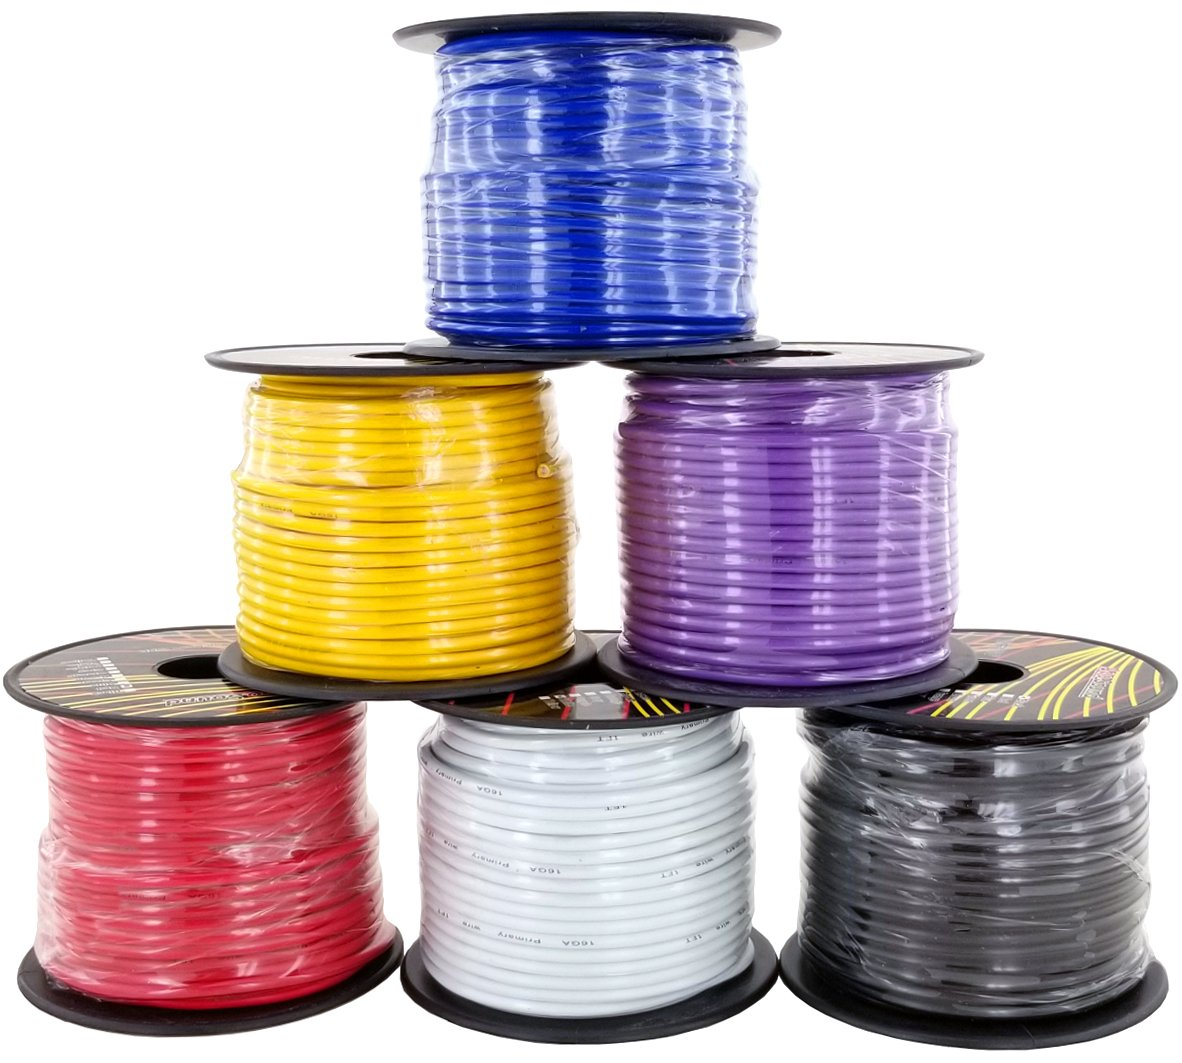 16 Gauge 6 Color Primary Wire Combo Pack 100 ft per Roll (600 feet Total) for Automotive Dash Harness Hookup Car Speaker Audio Amplifier Remote Model Train LED Light Wiring by GS Power